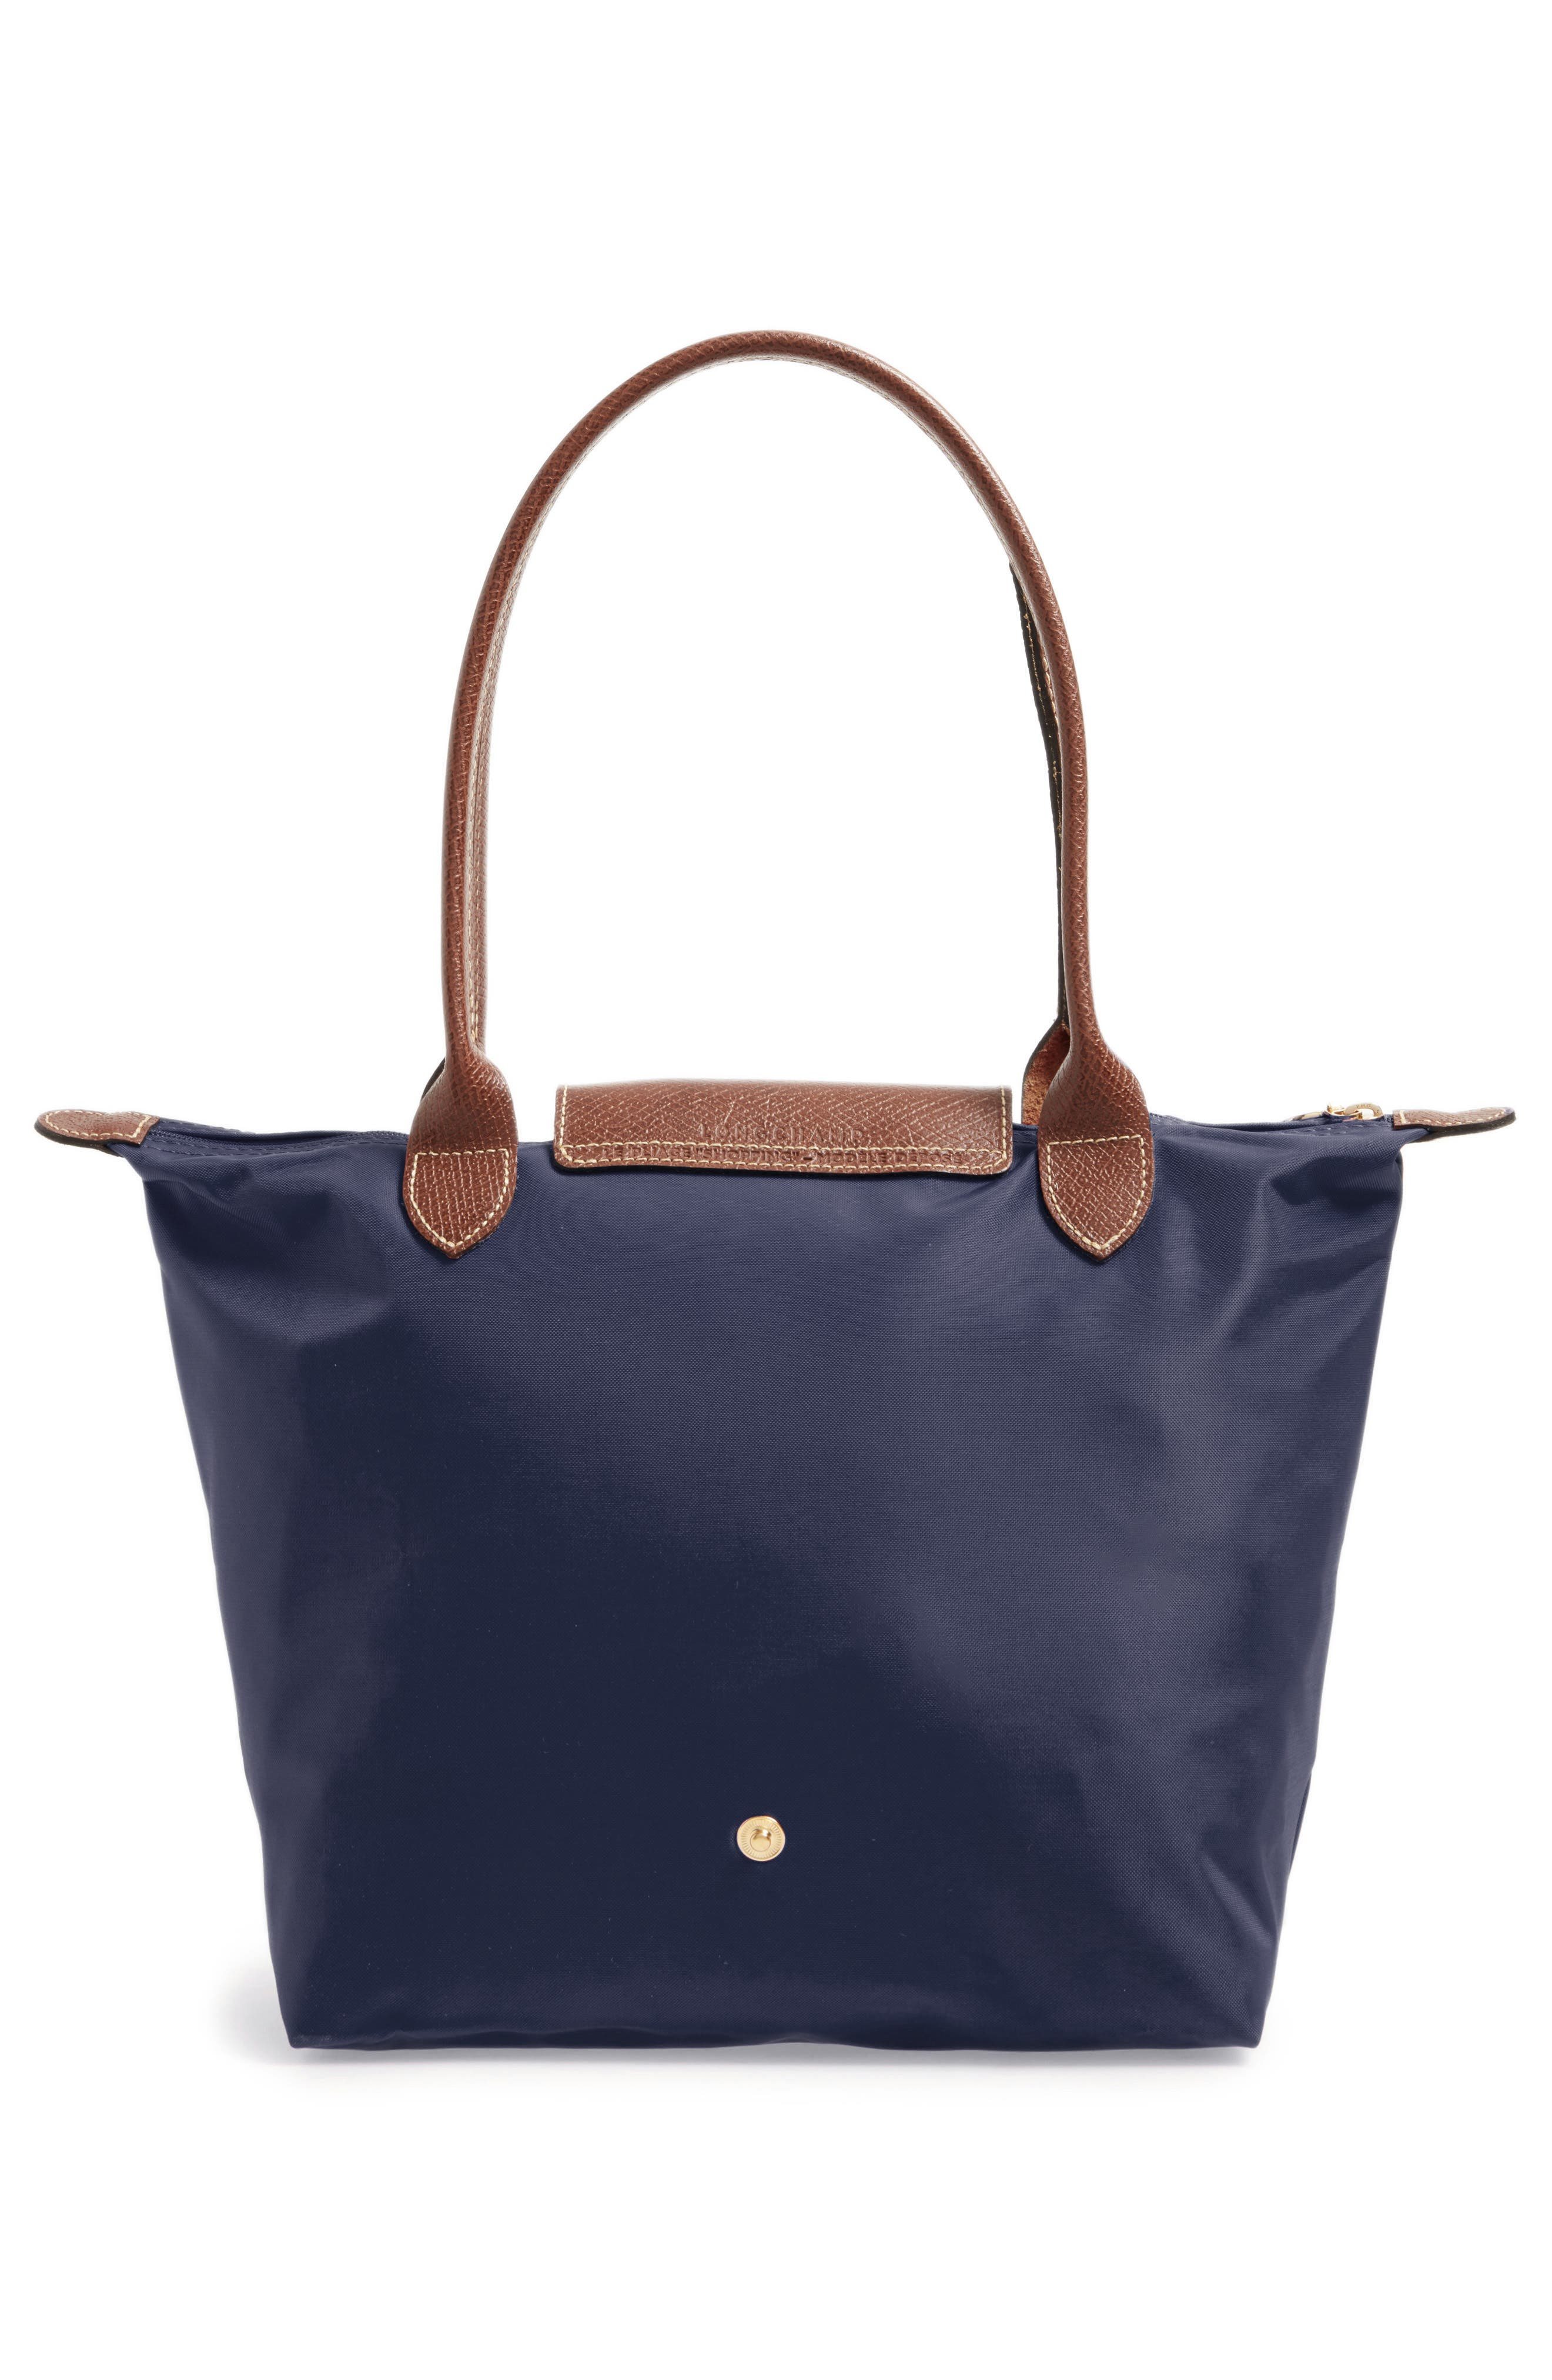 'Small Le Pliage' Tote,                             Alternate thumbnail 3, color,                             NEW NAVY